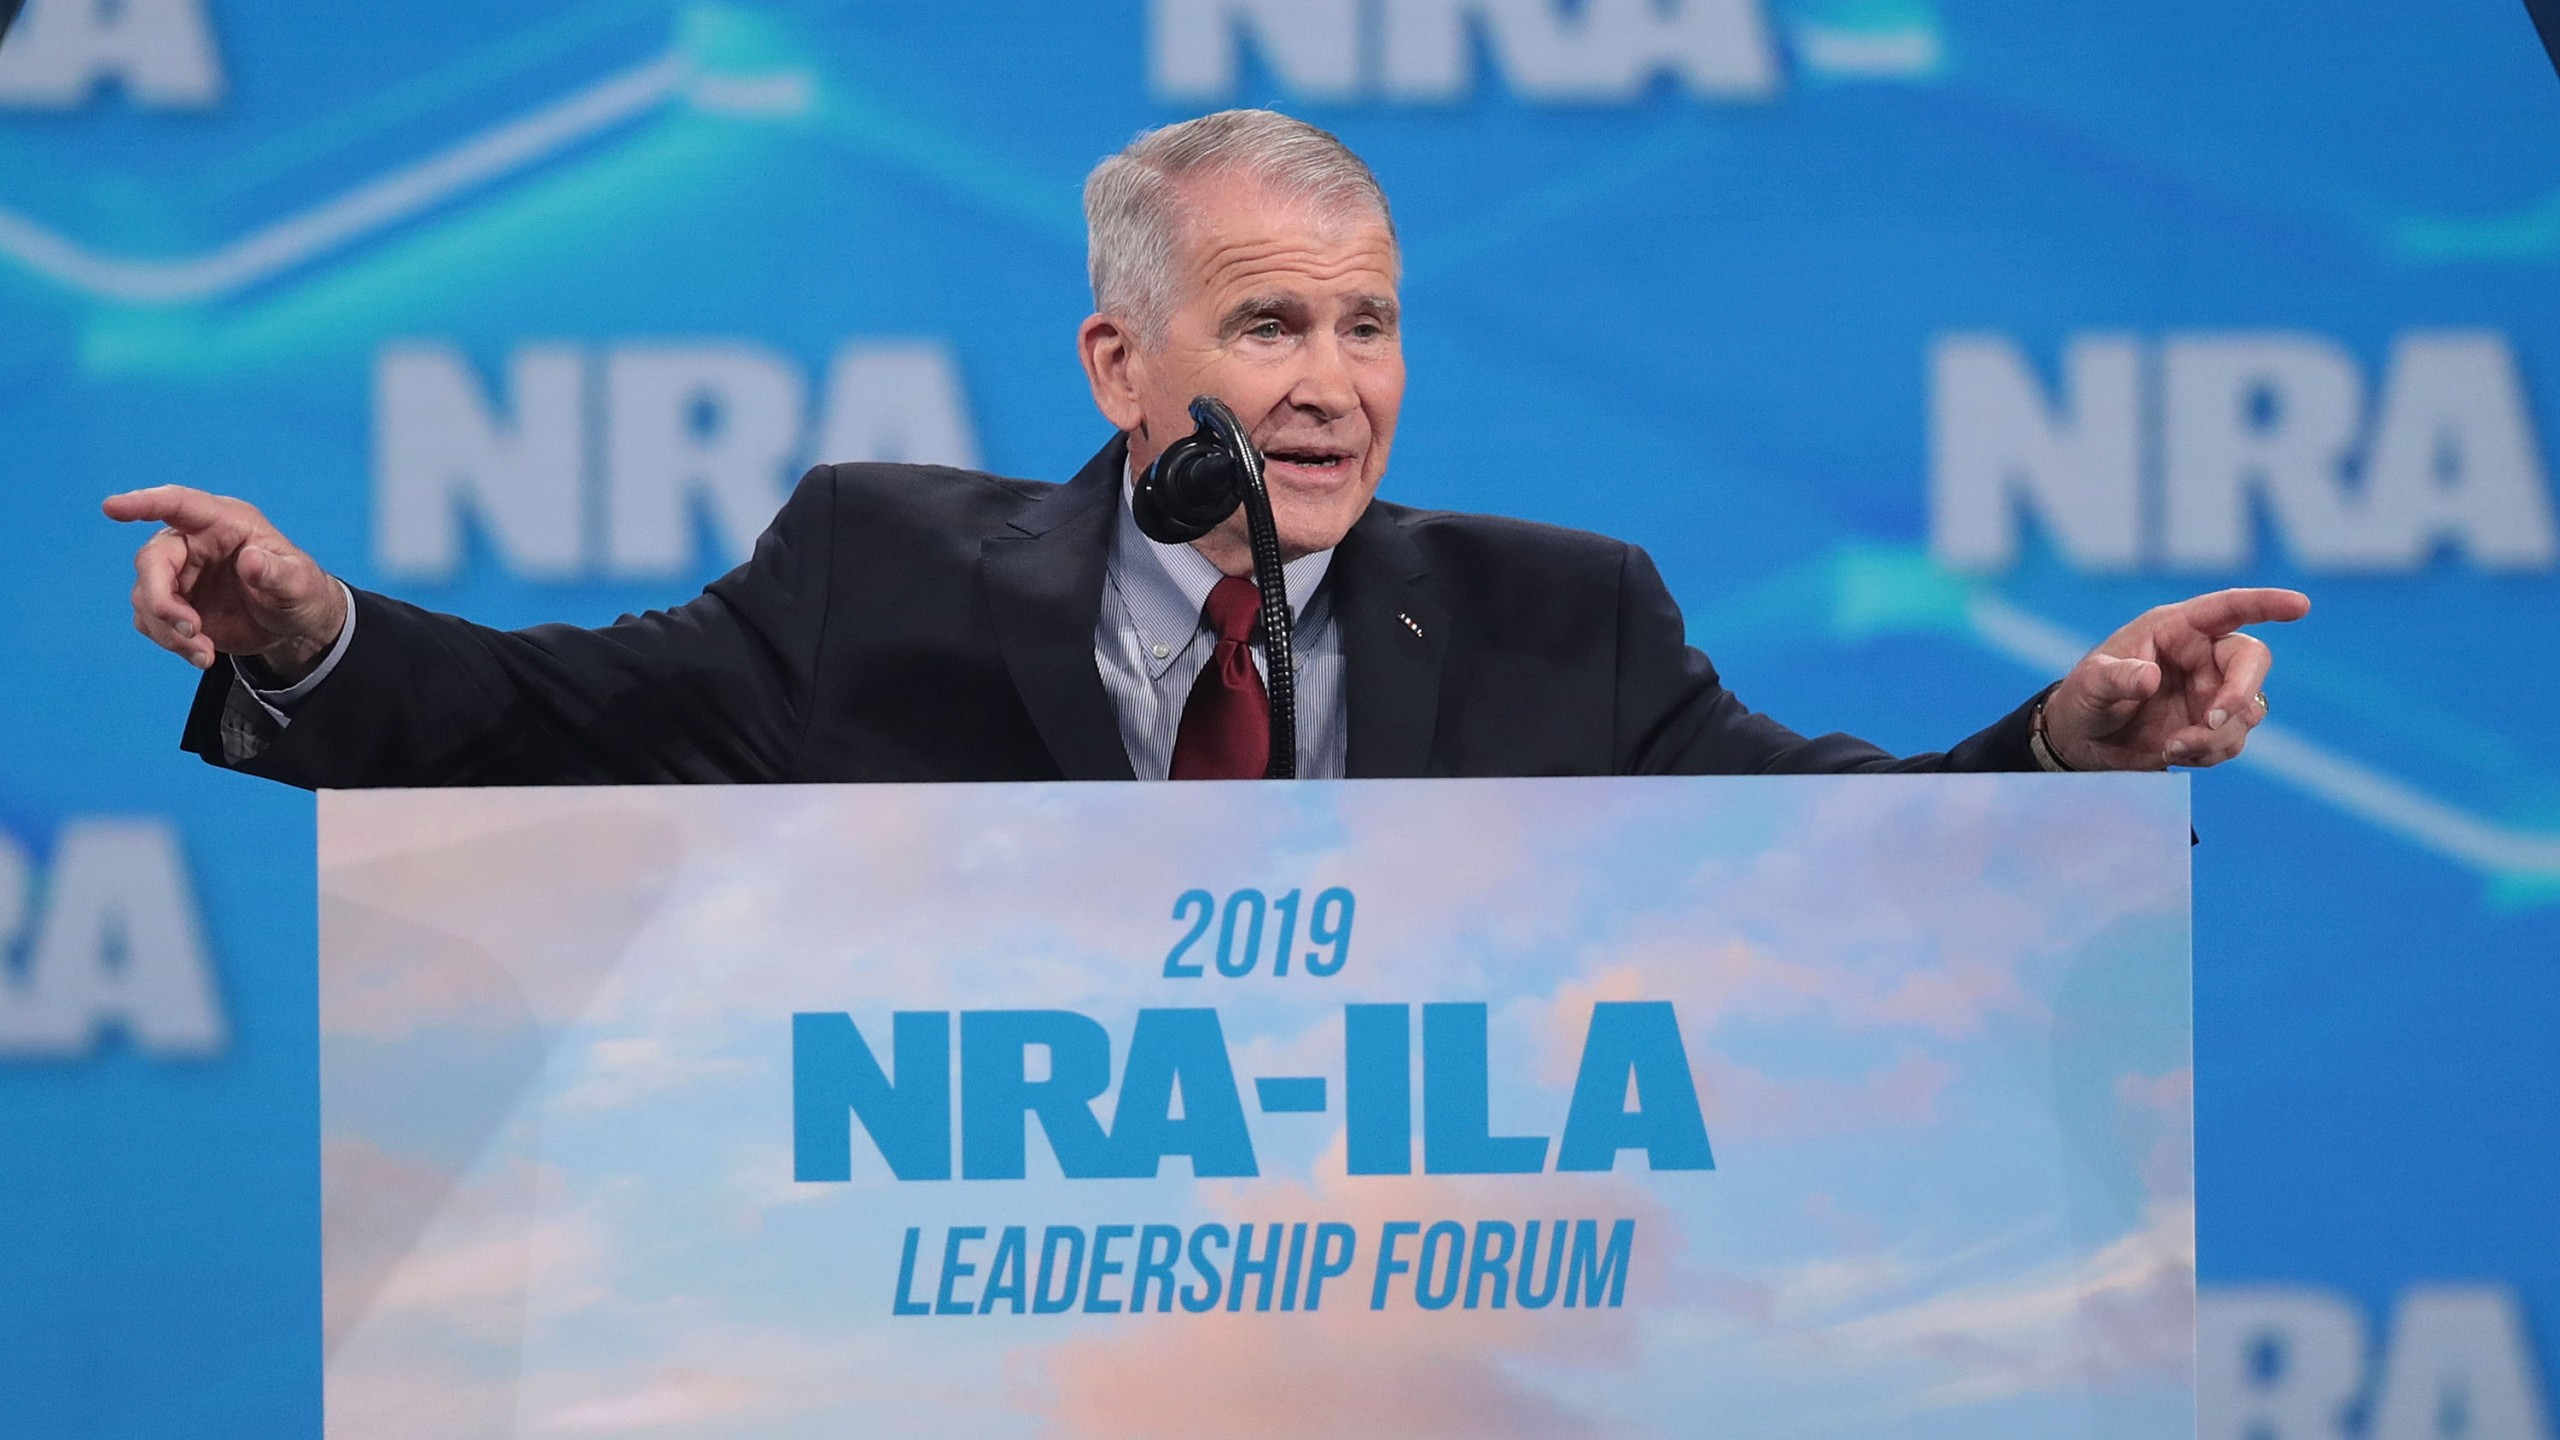 NRA President Oliver North speaks at the NRA-ILA Leadership Forum at the 148th NRA Annual Meetings & Exhibits on April 26, 2019 in Indianapolis, Indiana. (Credit: Scott Olson/Getty Images)